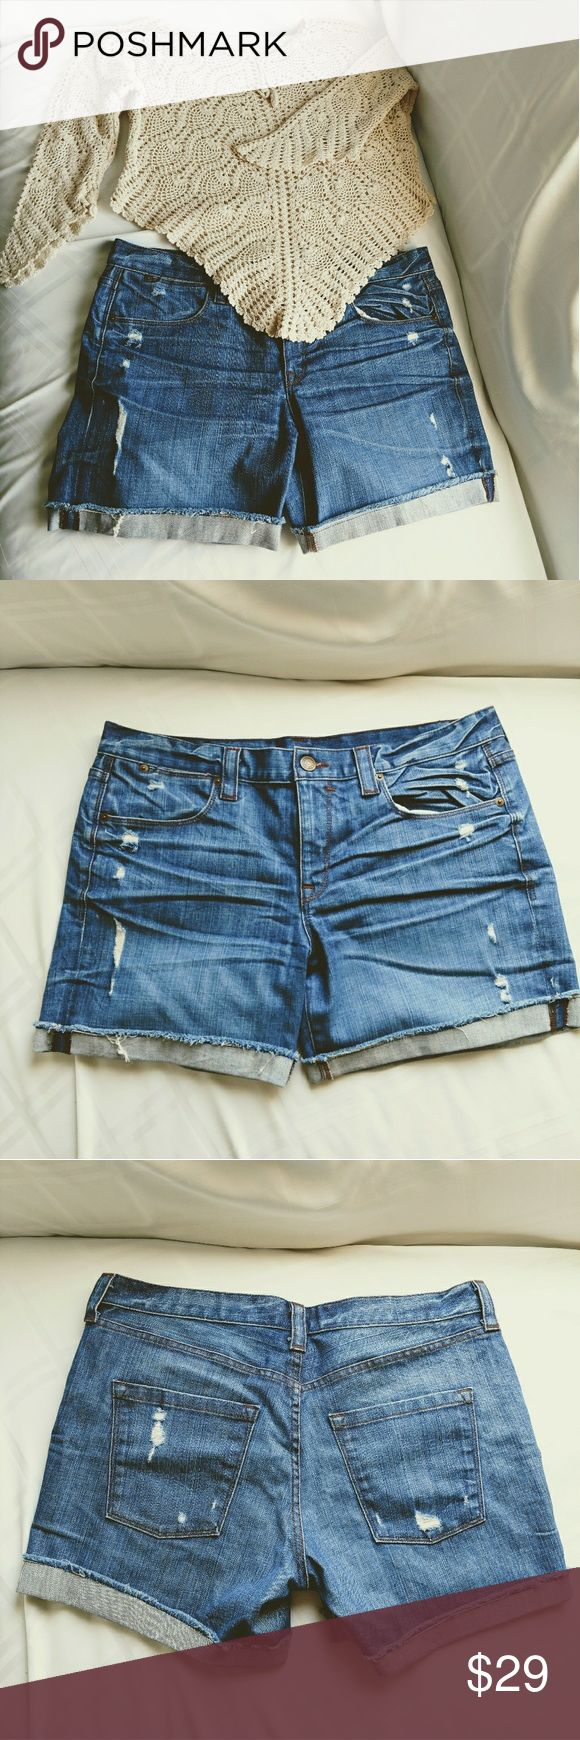 J. Crew Distressed Blue Denim Shorts Size 32 Totally adorable distressed Indigo colored denim shorts by J. Crew. Size 32. Inseam (unfolded) 7 Inches. With natural fold is approximately 5 1/2 inches. Excellent condition! J. Crew Shorts Jean Shorts